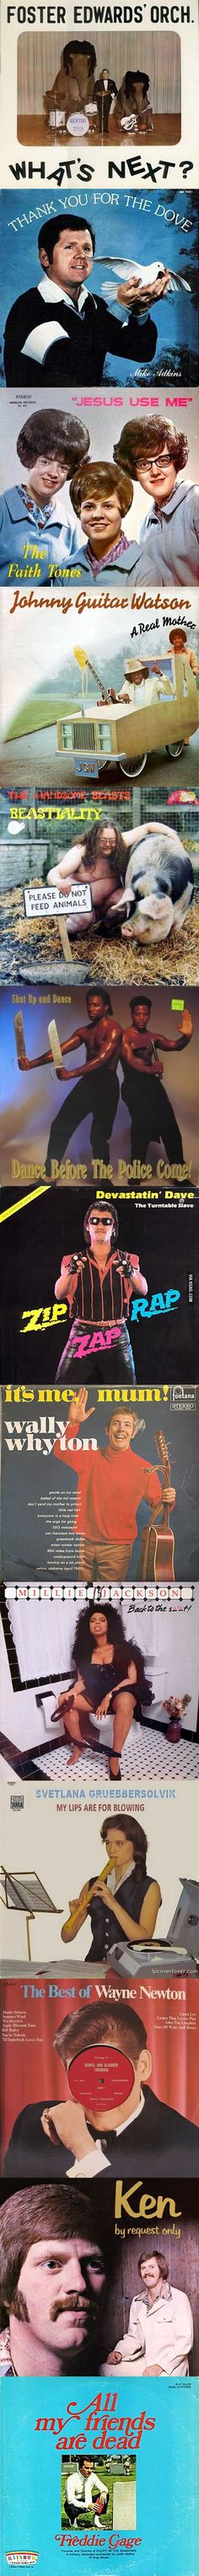 Worst Album Covers of All Time